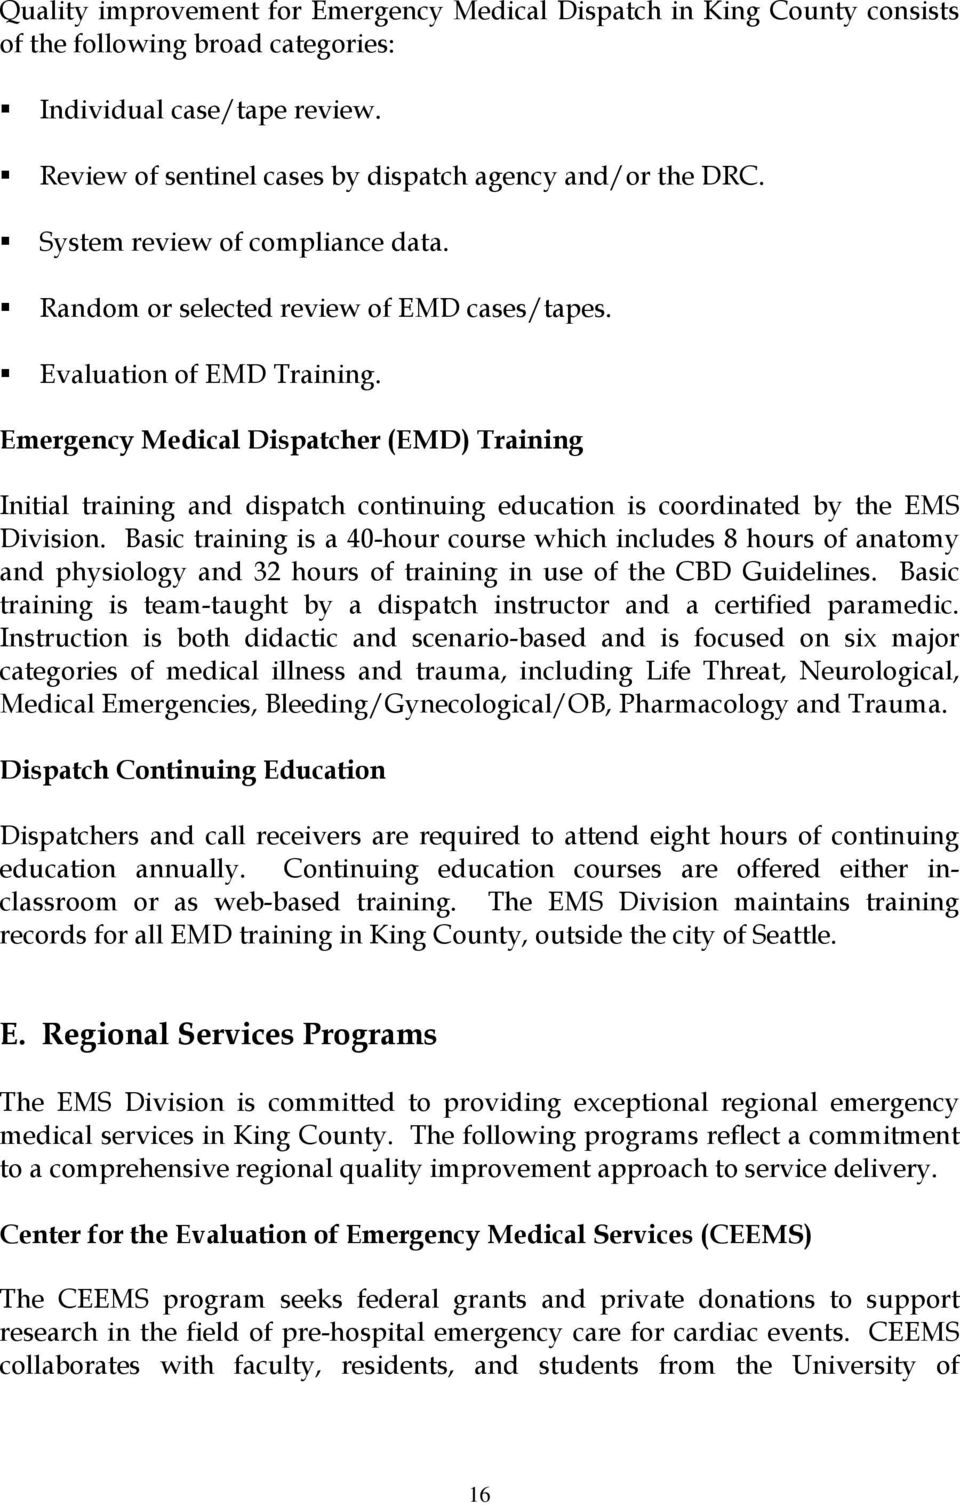 Emergency Medical Dispatcher (EMD) Training Initial training and dispatch continuing education is coordinated by the EMS Division.